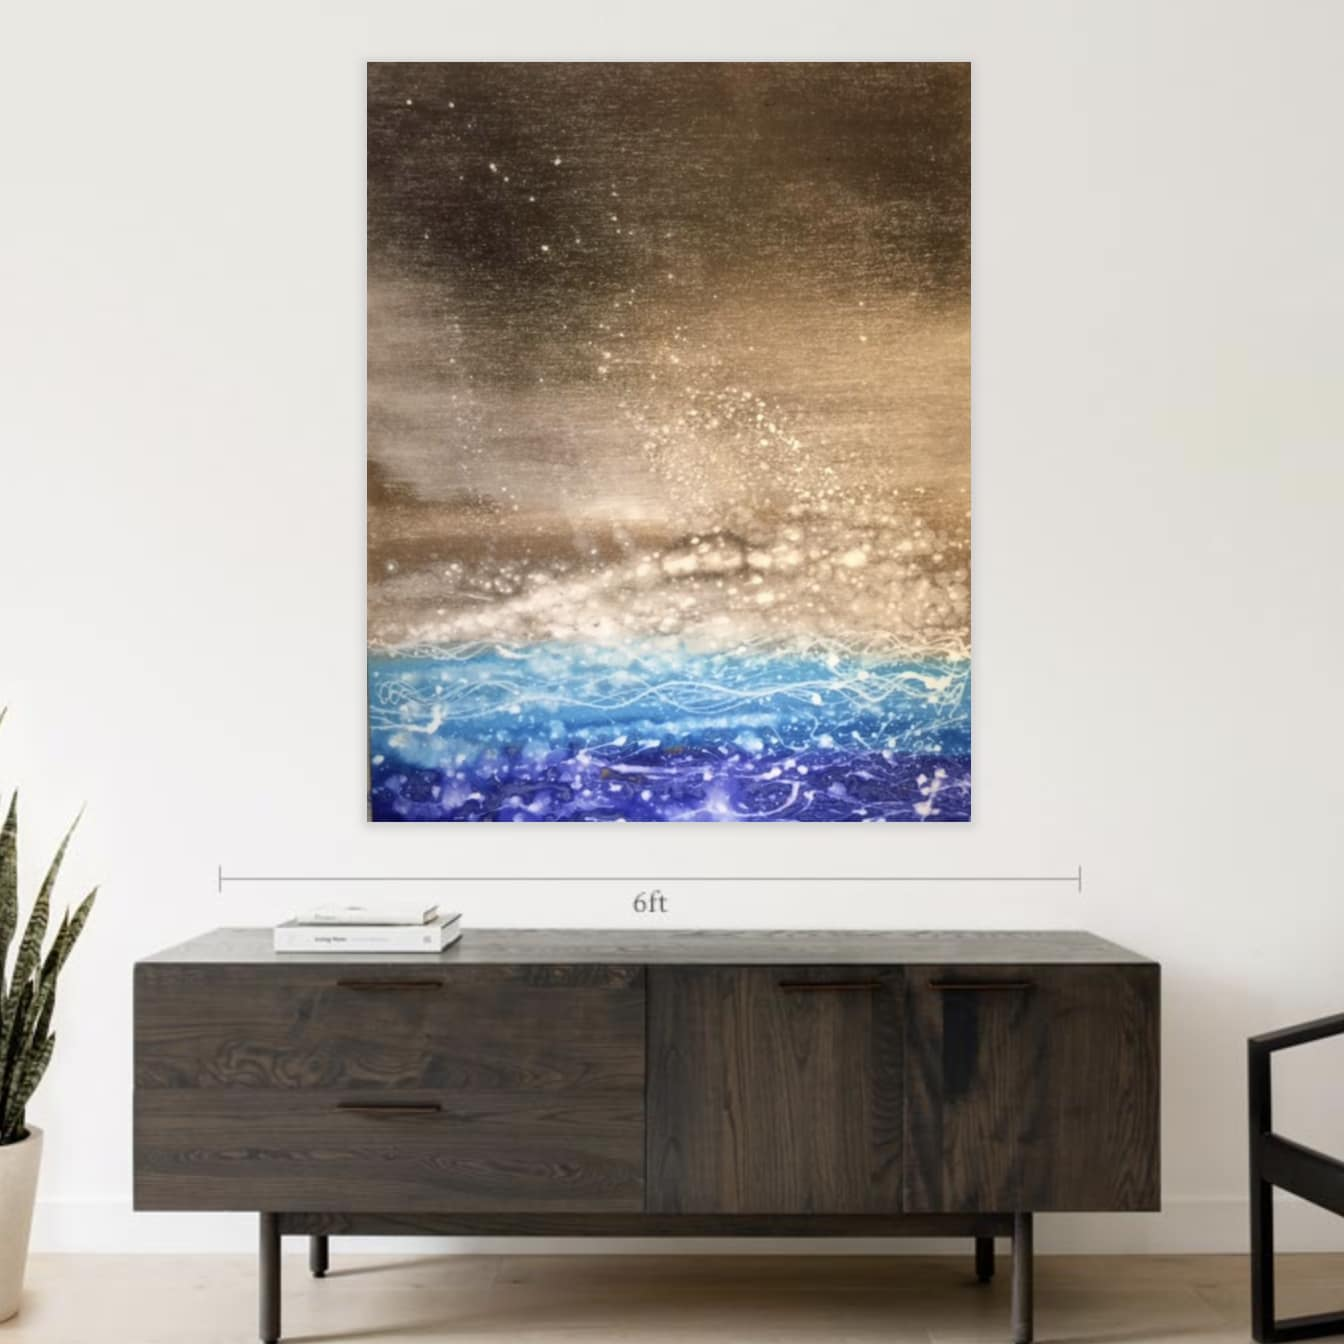 Two paintings available on Saatchi Art